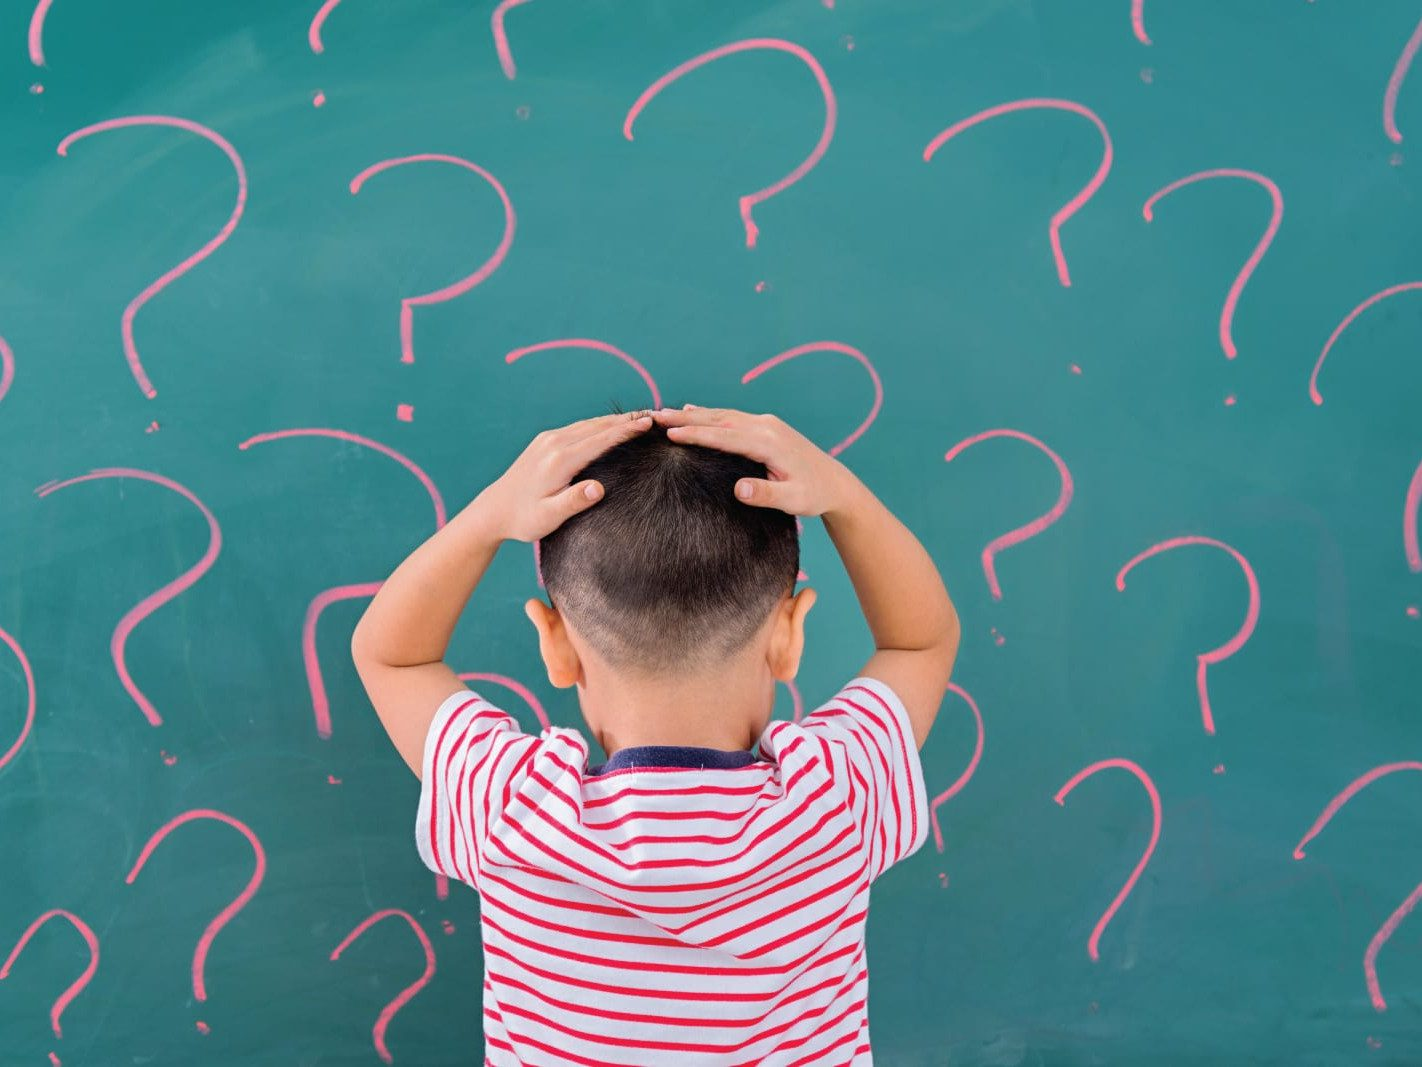 Boy with question